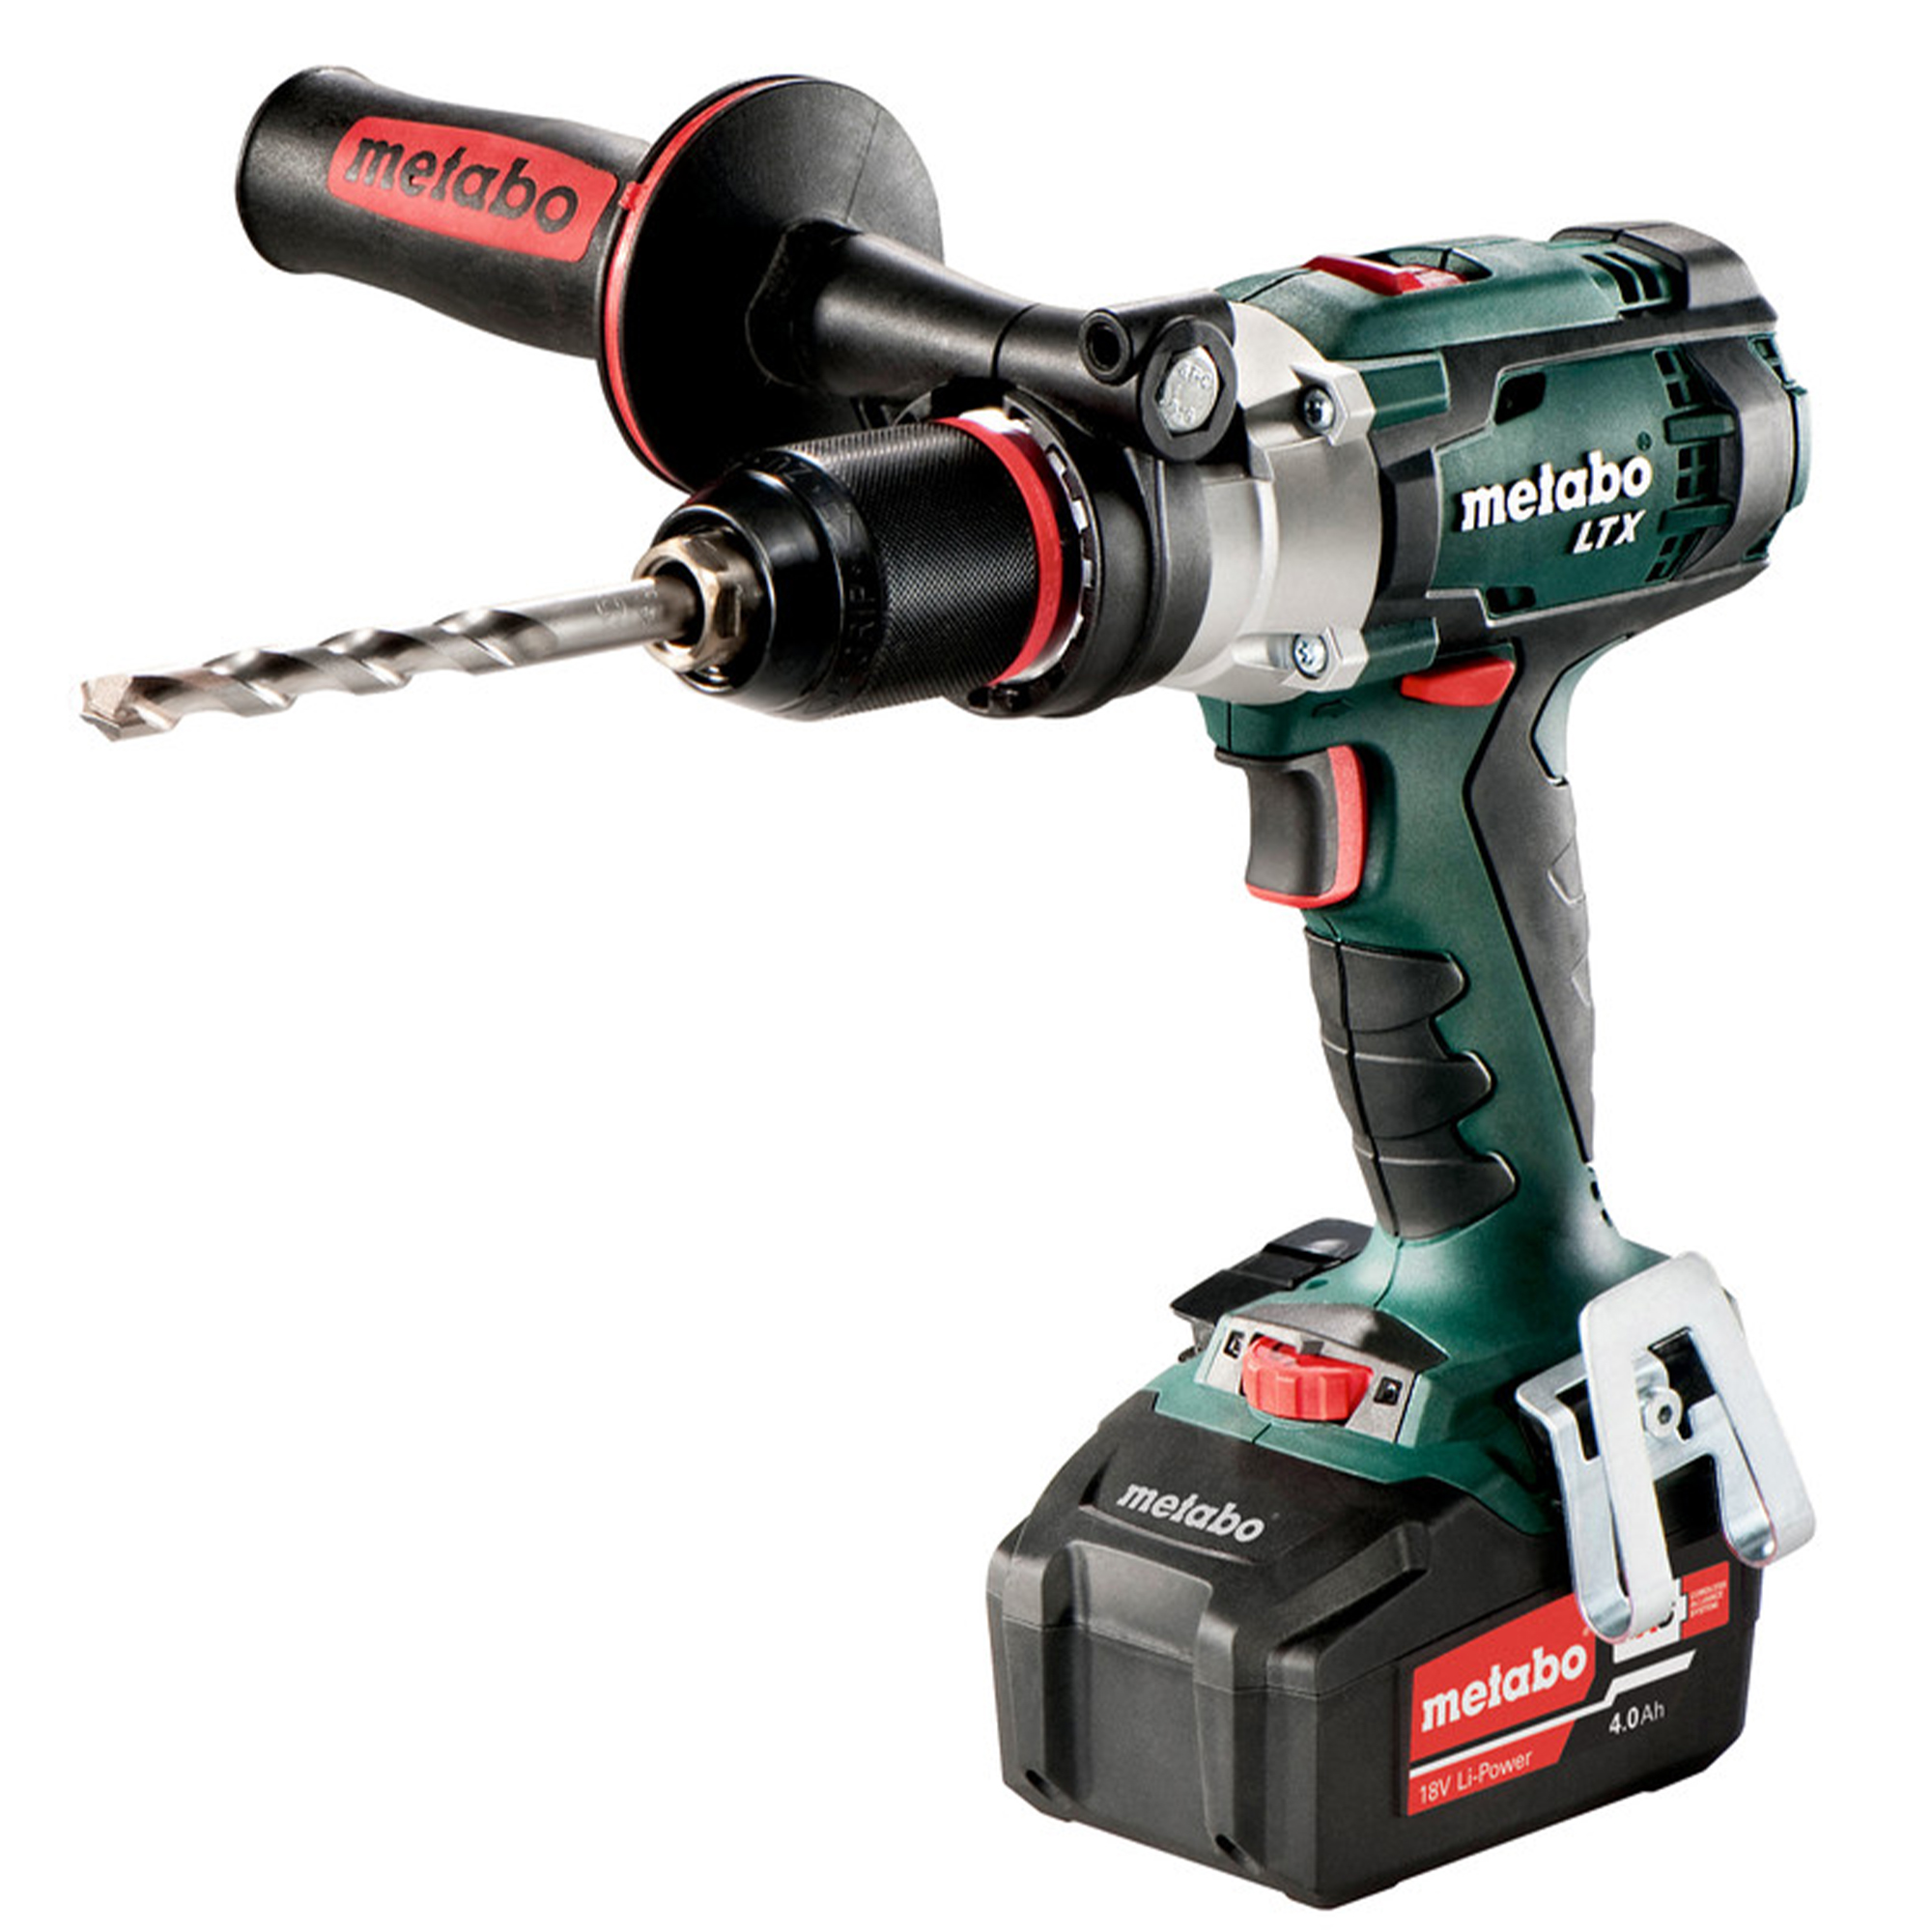 metabo sb18ltx1 metabo 18v hammer drill driver. Black Bedroom Furniture Sets. Home Design Ideas